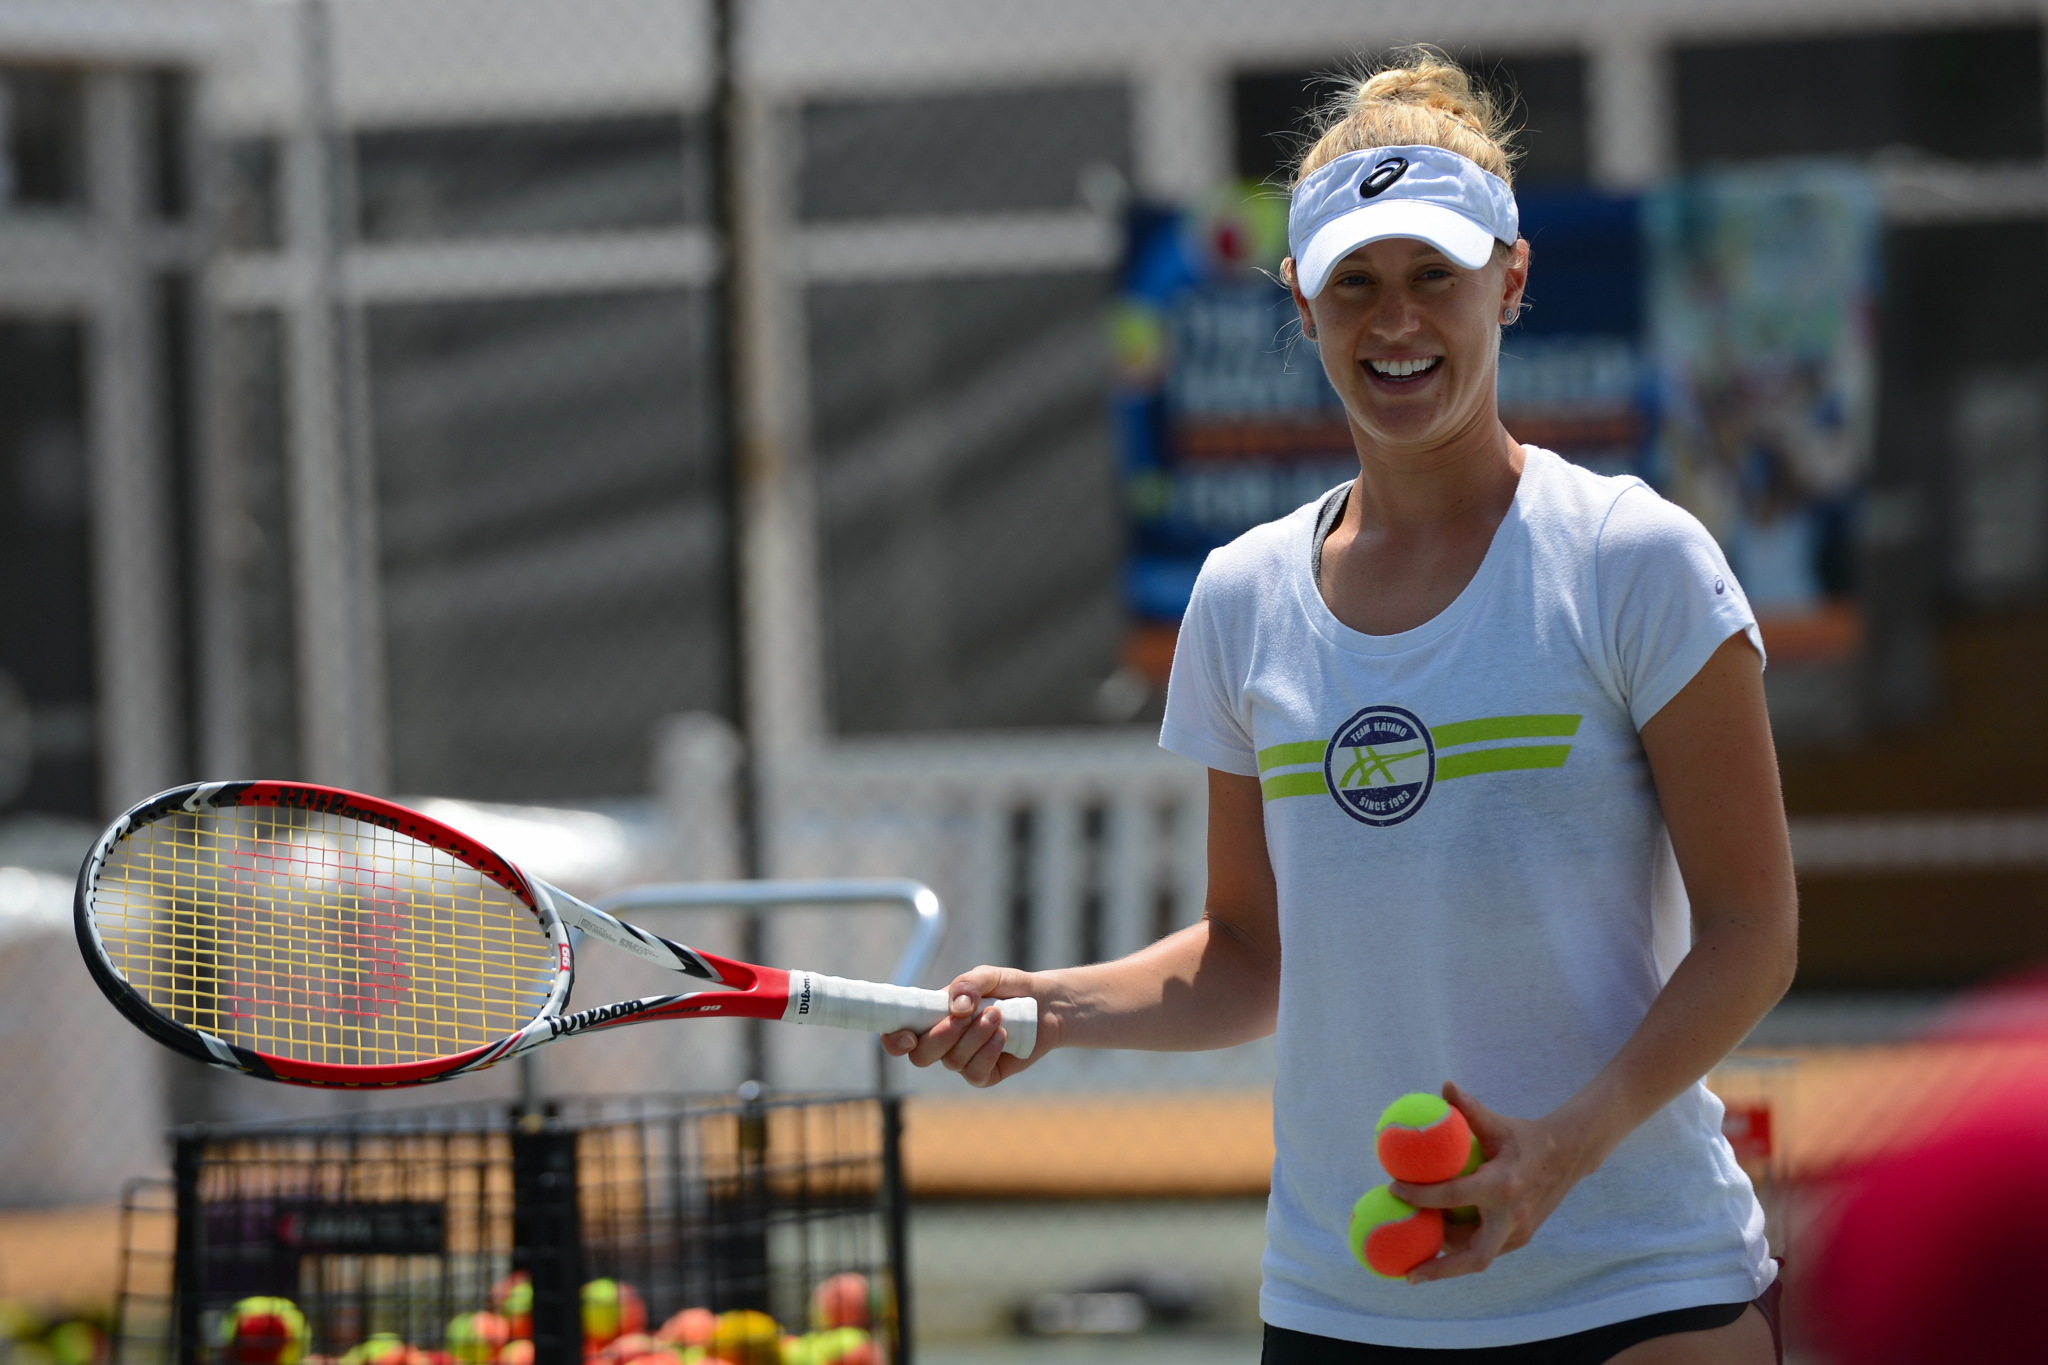 Alison Riske (Photo: @Tennis_Shots)